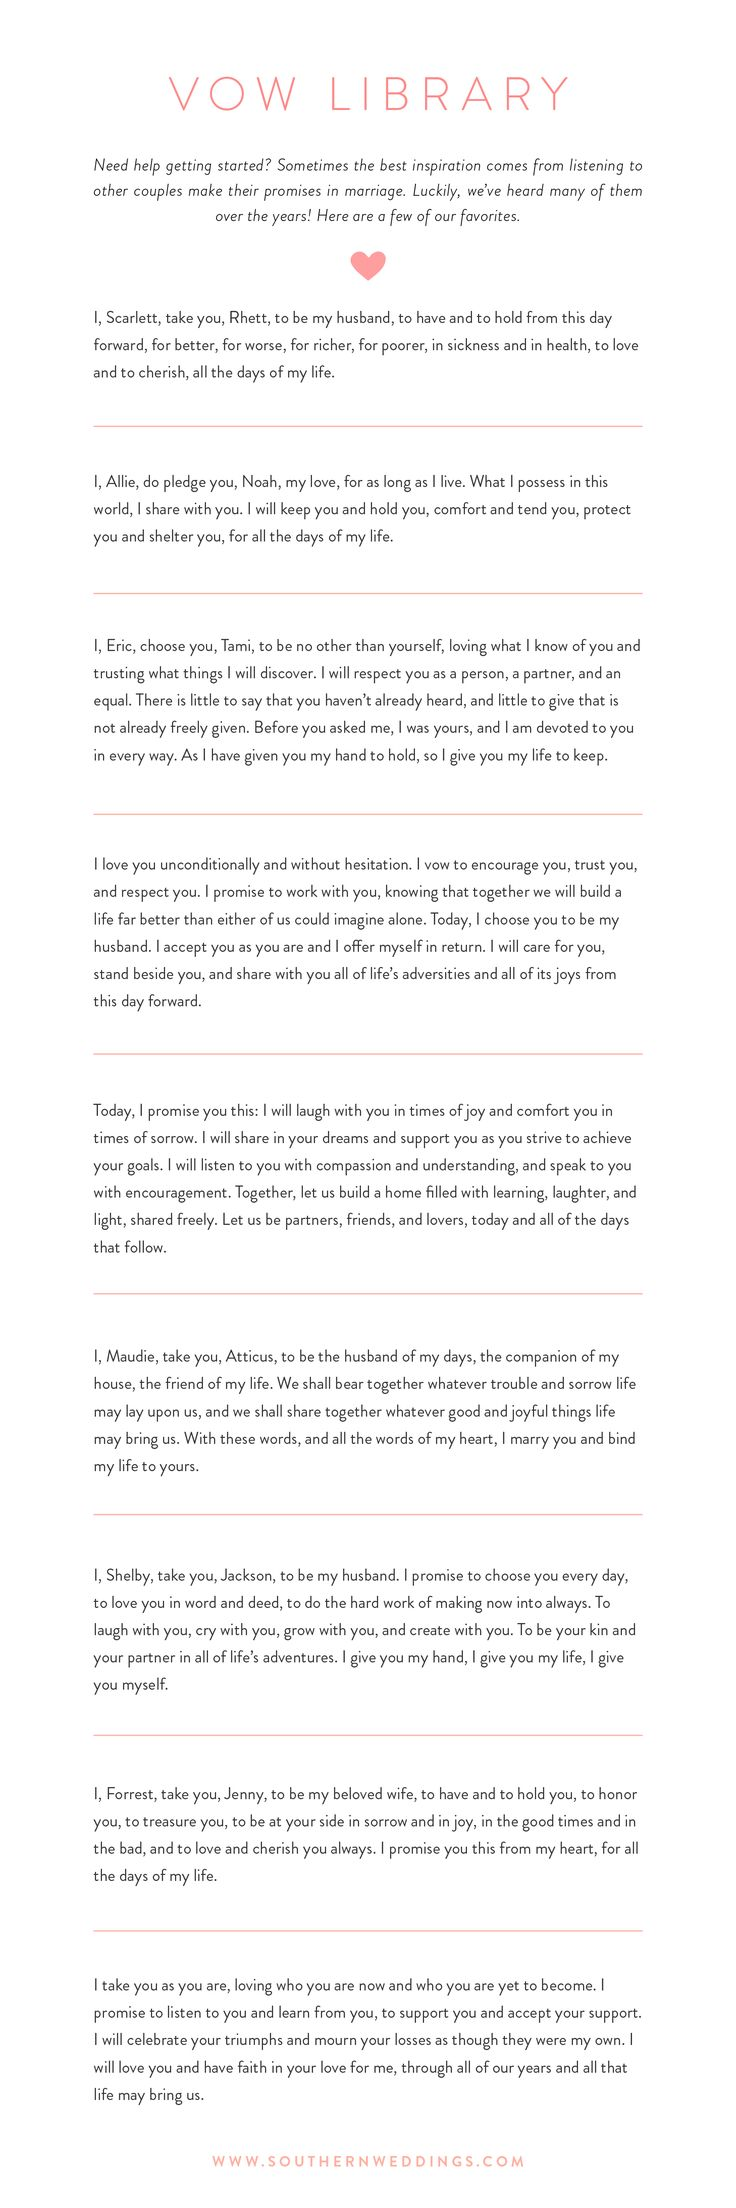 Best 25 wedding vows ideas on pinterest vows wedding promises 9 romantic wedding vows junglespirit Gallery